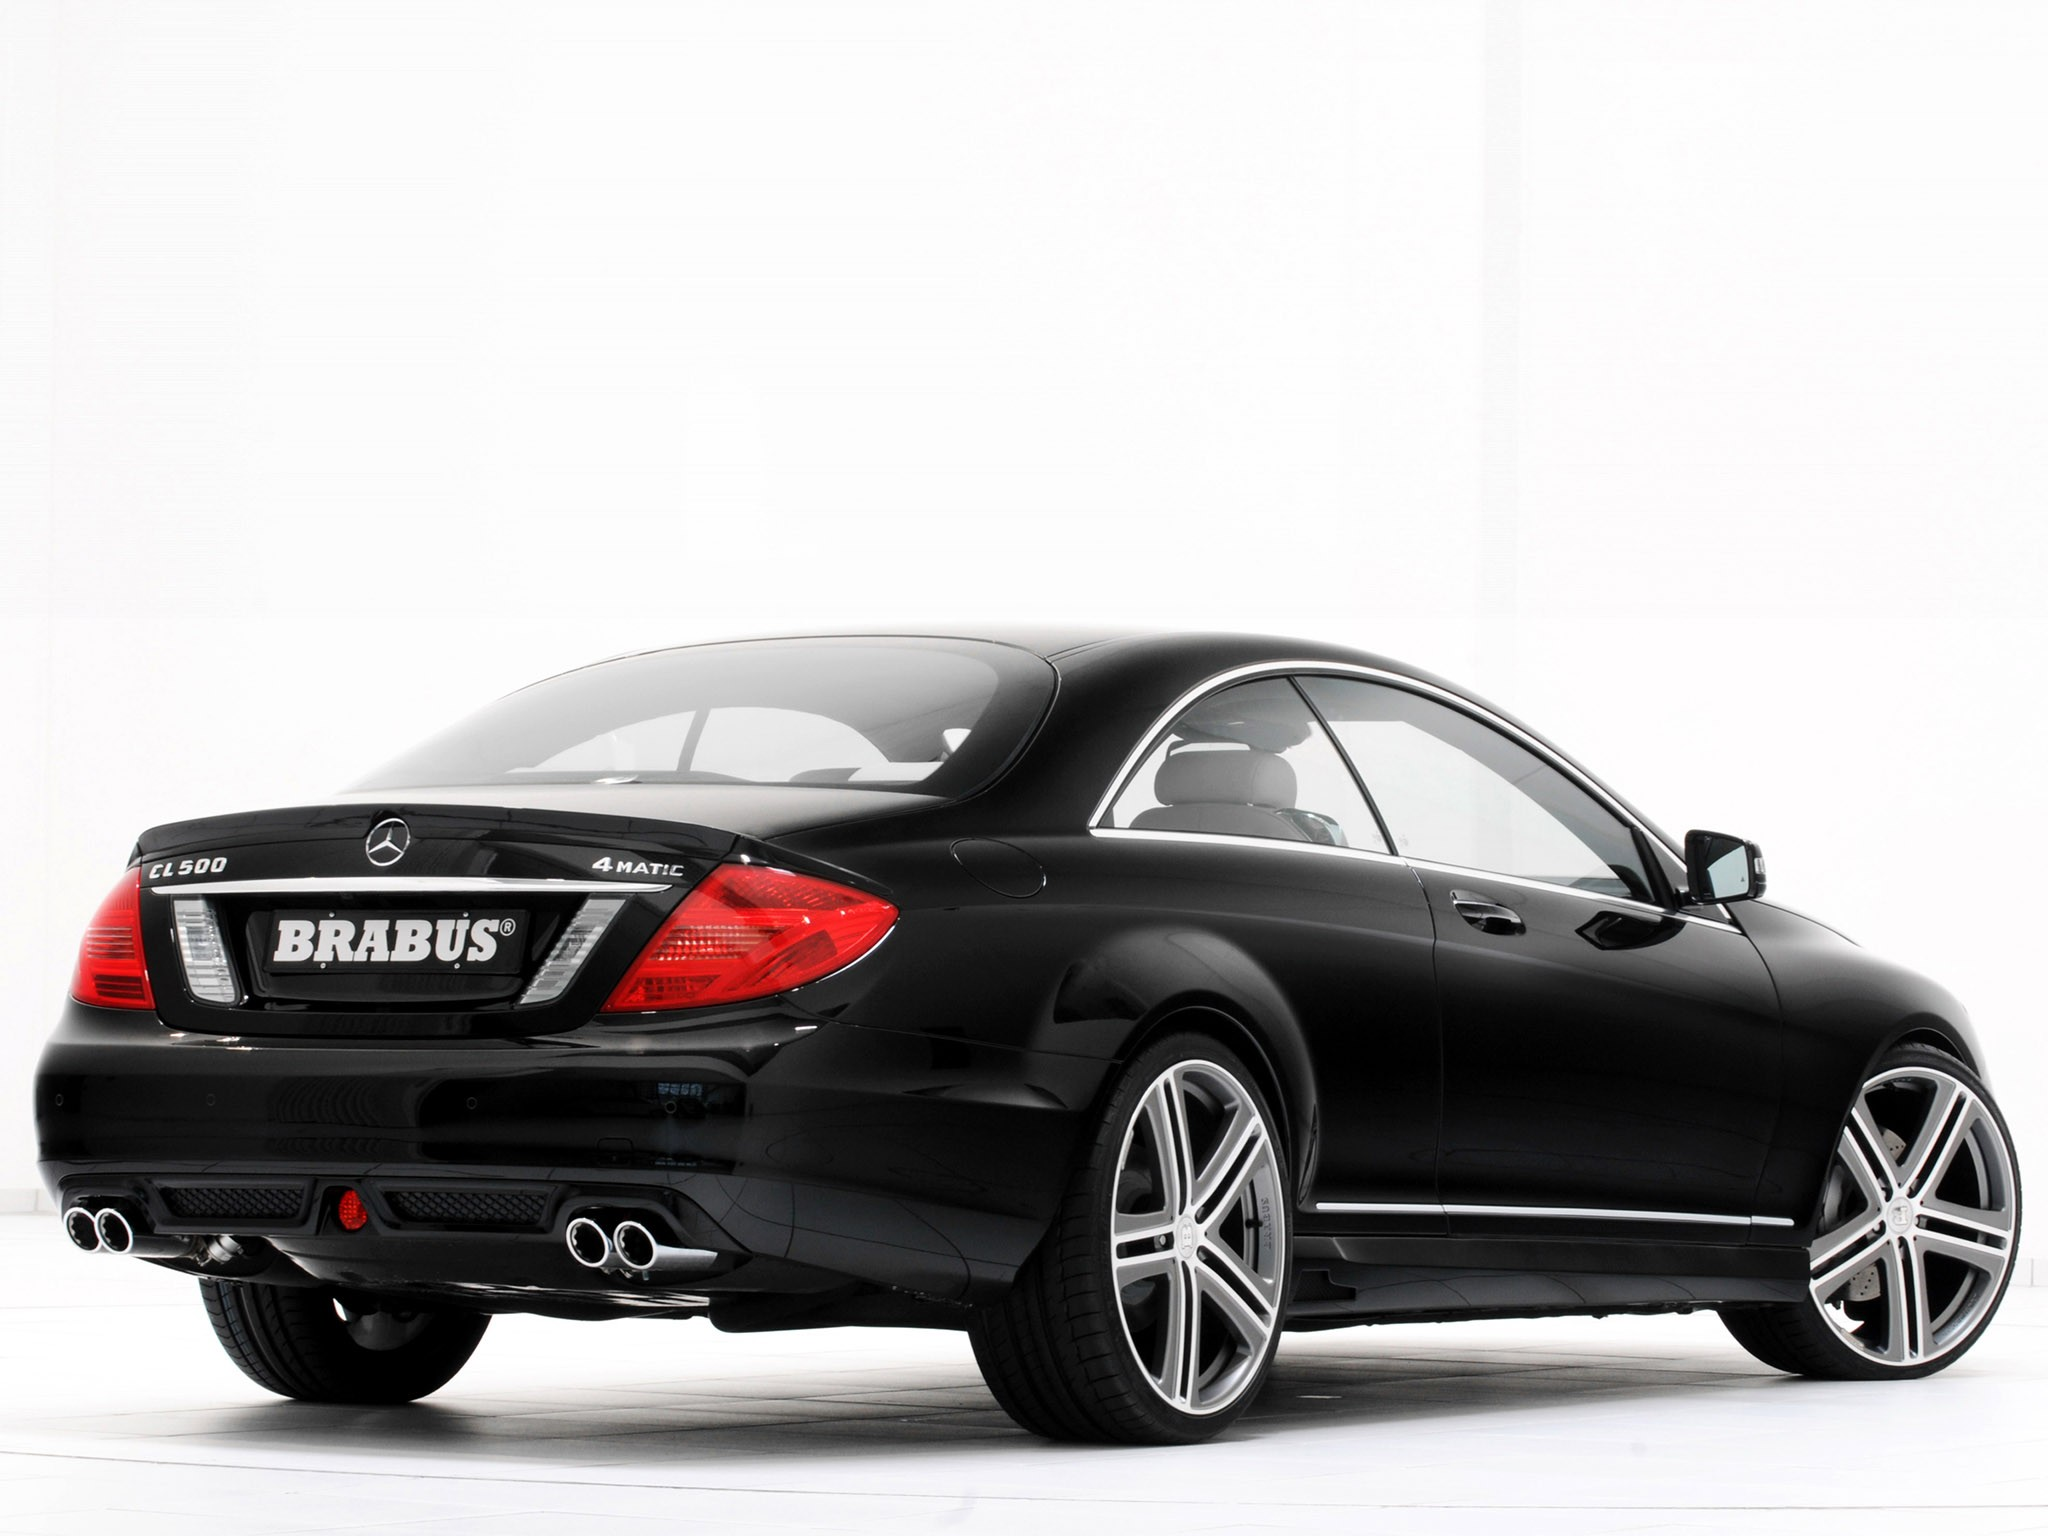 2011 Brabus Mercedes CL500 4matic C216